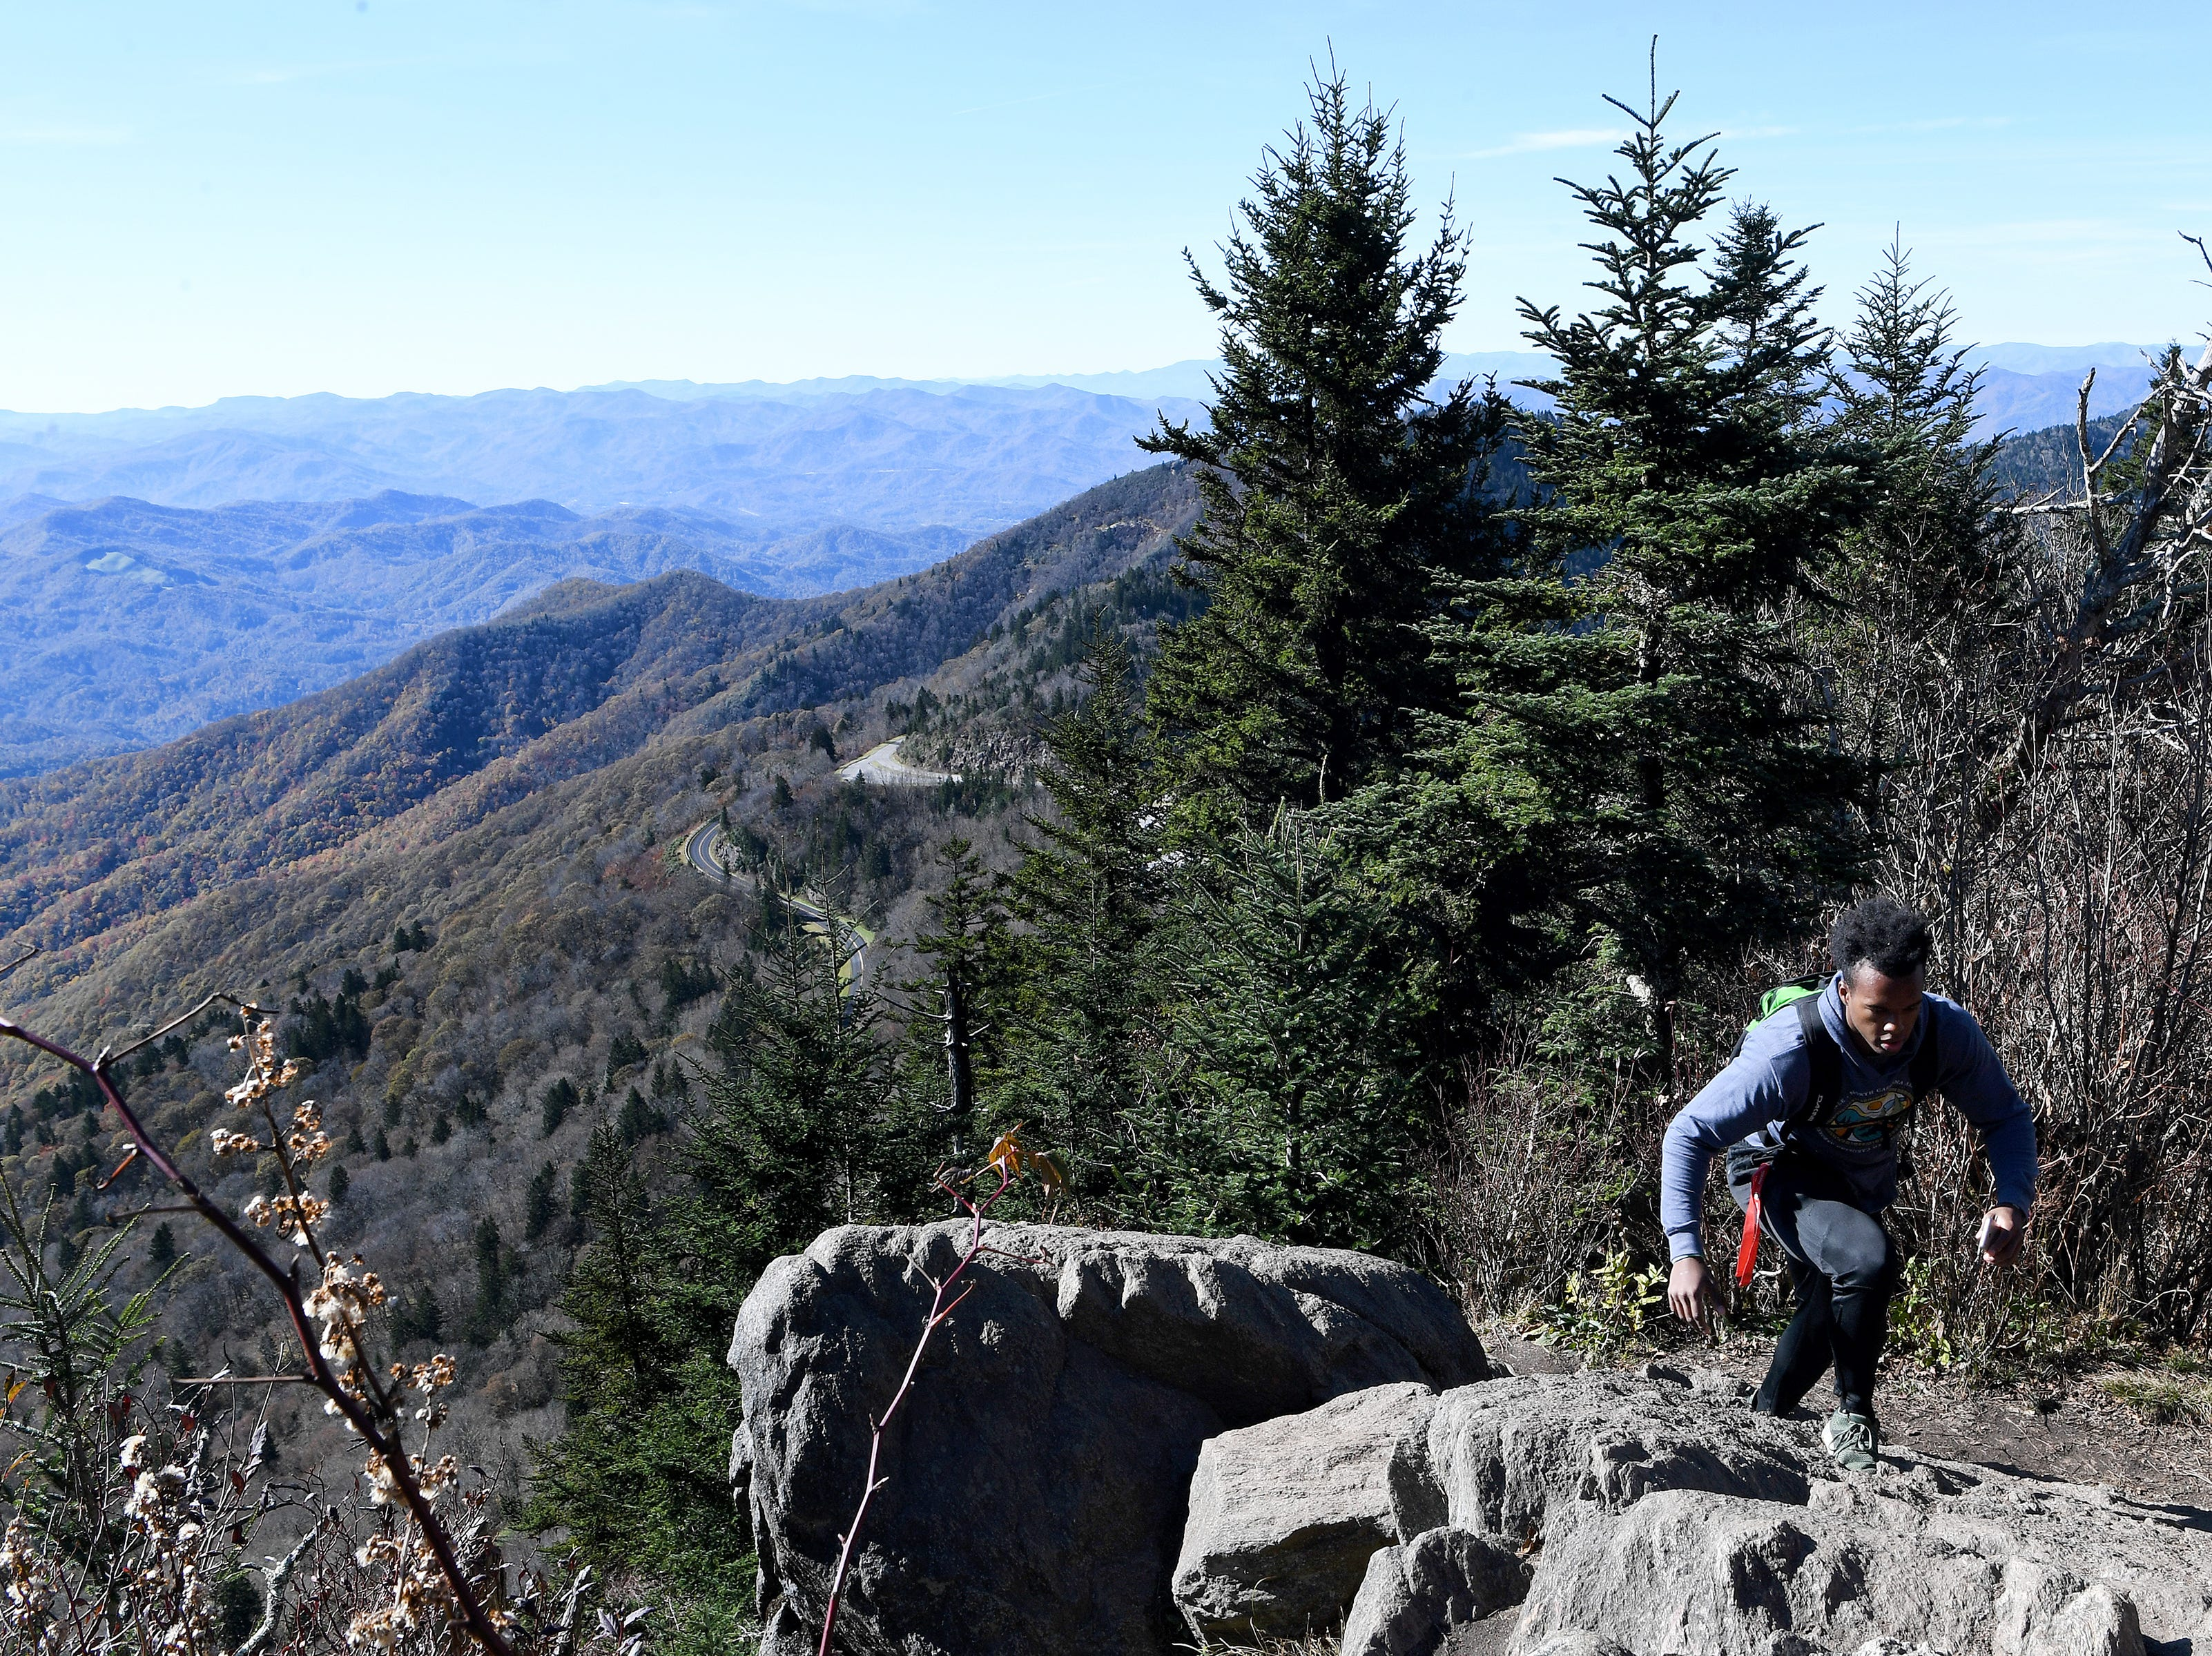 Pathways to Parks, an outdoors group that aims to get more people of color outside and into our National Parks, met for a hike at Waterrock Knob and took a detour down the unofficial Plott Balsam Trail on Oct. 30, 2018.